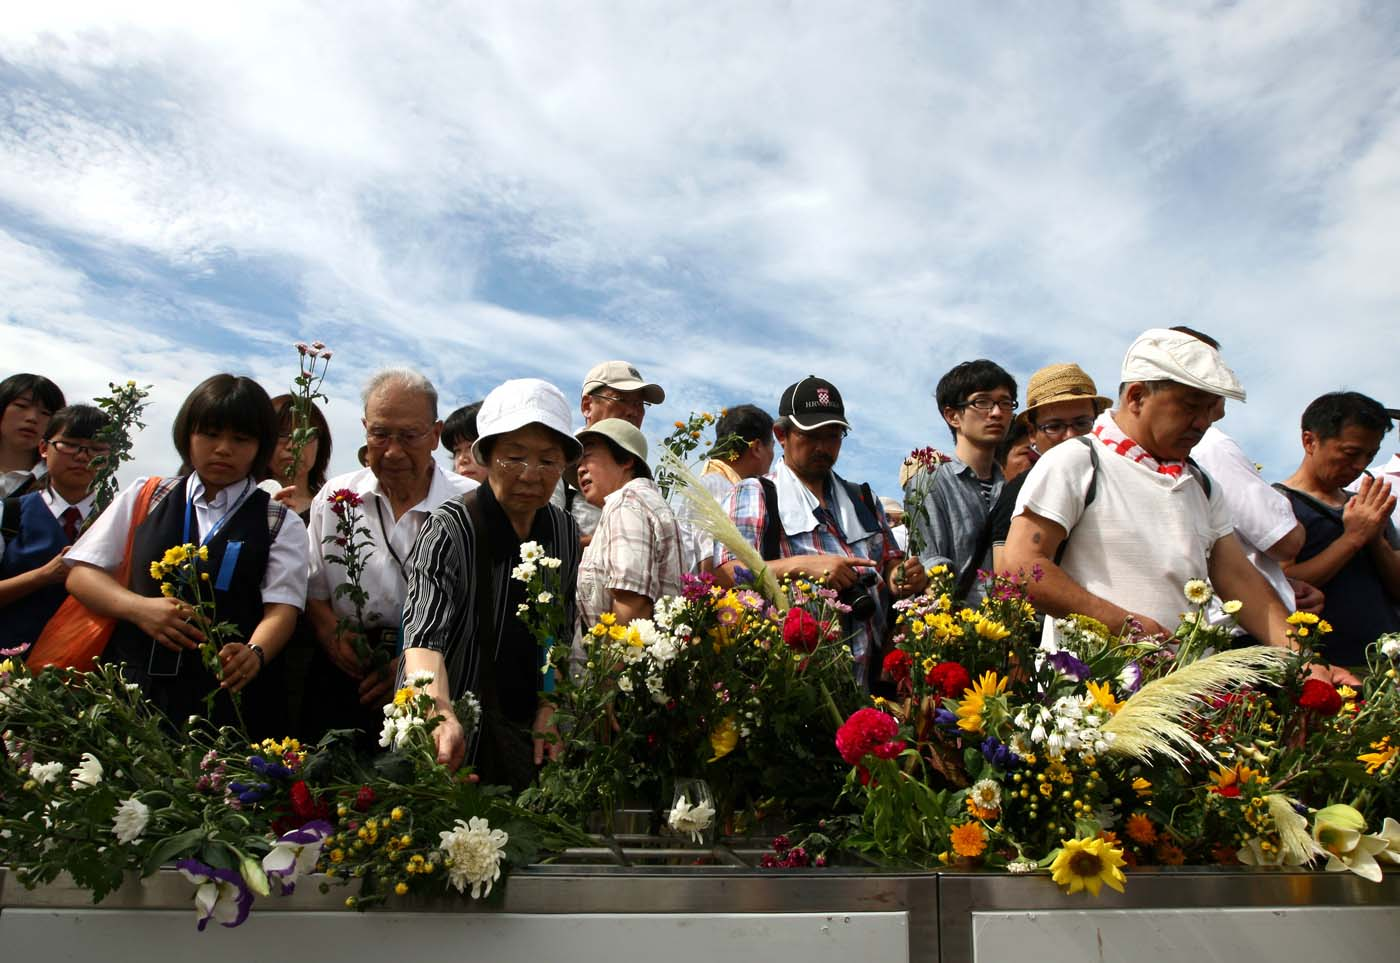 August 6 Photo Brief: Hiroshima marks 67th anniversary of atomic bomb, Curiosity on Mars, Olympics Day 10 and an underwater wedding